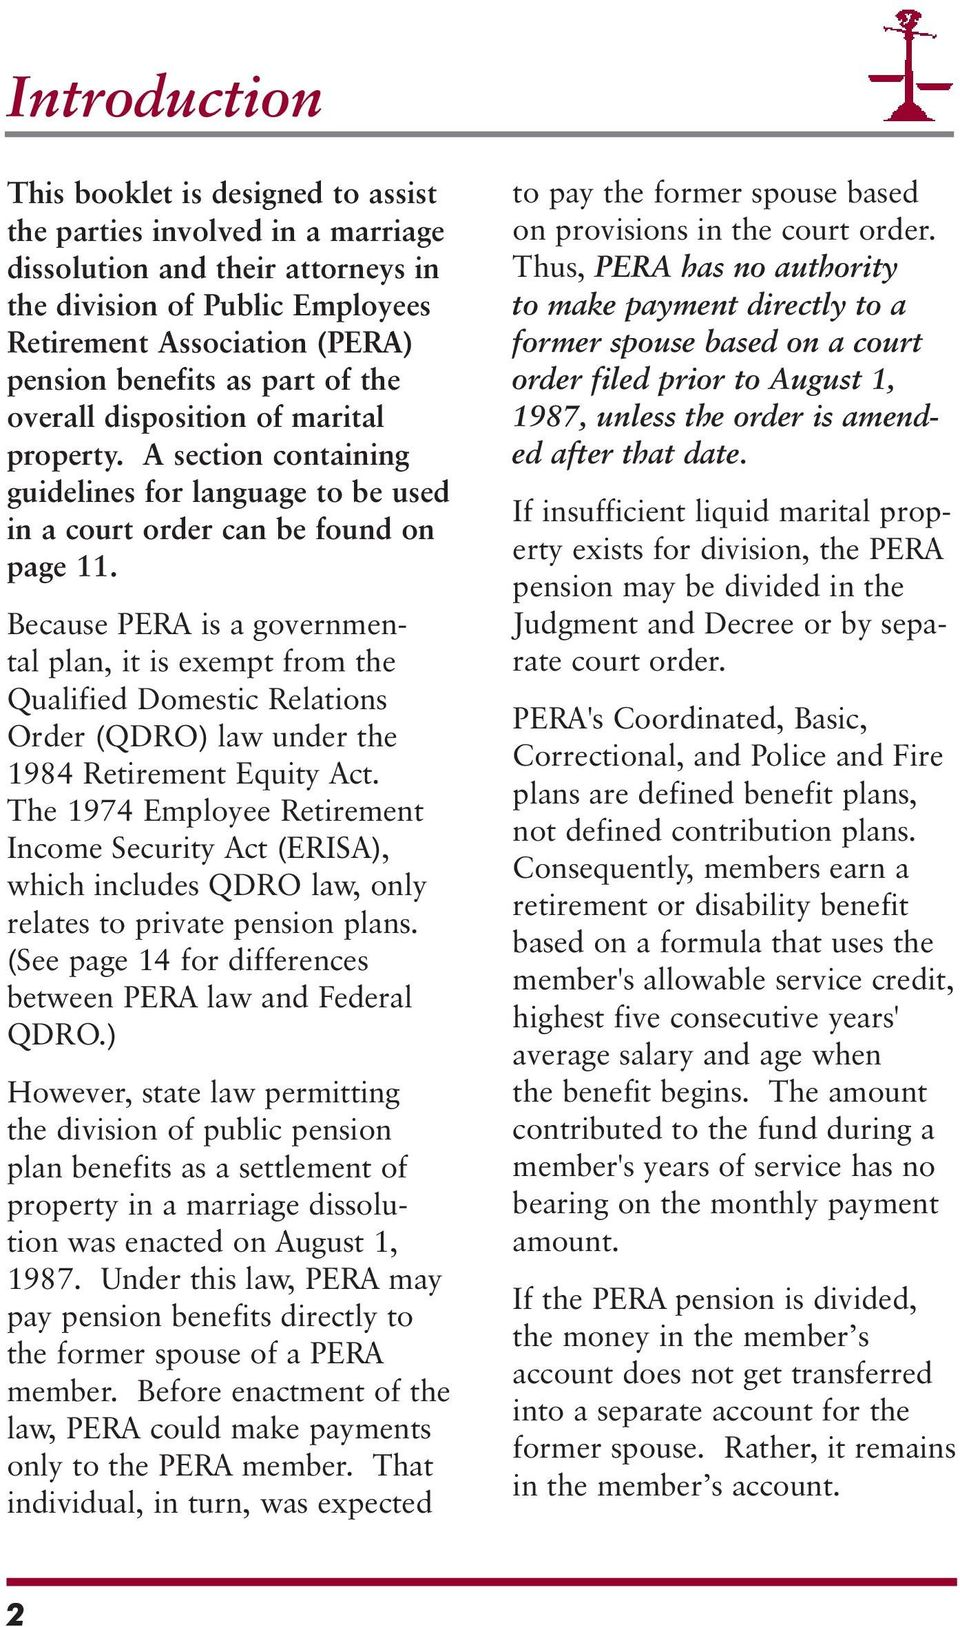 Because PERA is a governmental plan, it is exempt from the Qualified Domestic Relations Order (QDRO) law under the 1984 Retirement Equity Act.